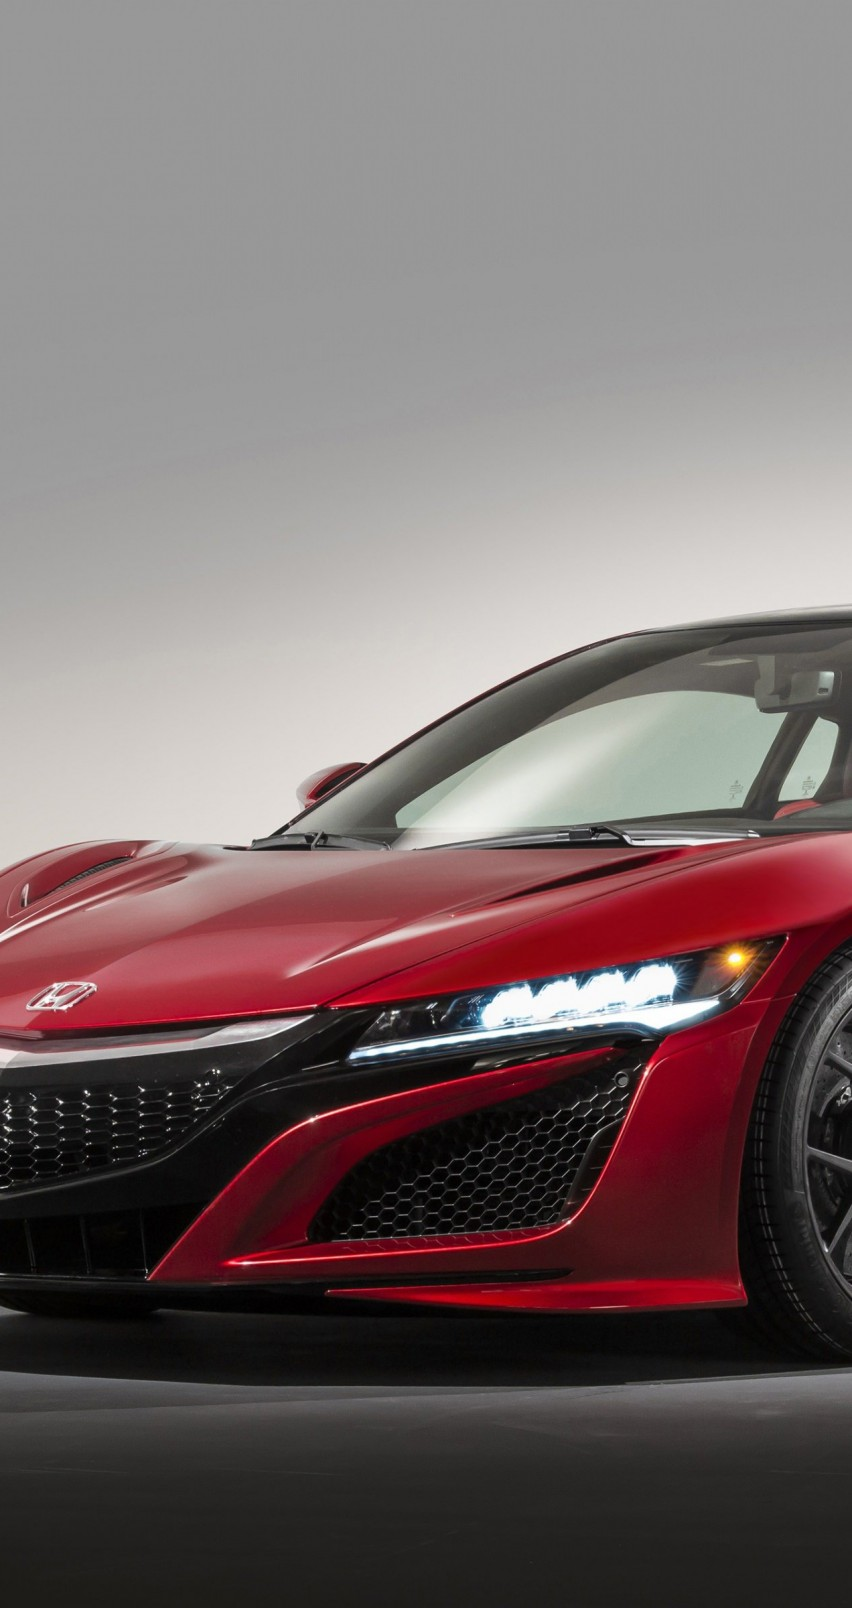 Honda NSX 2015 Wallpaper for Apple iPhone 6 / 6s